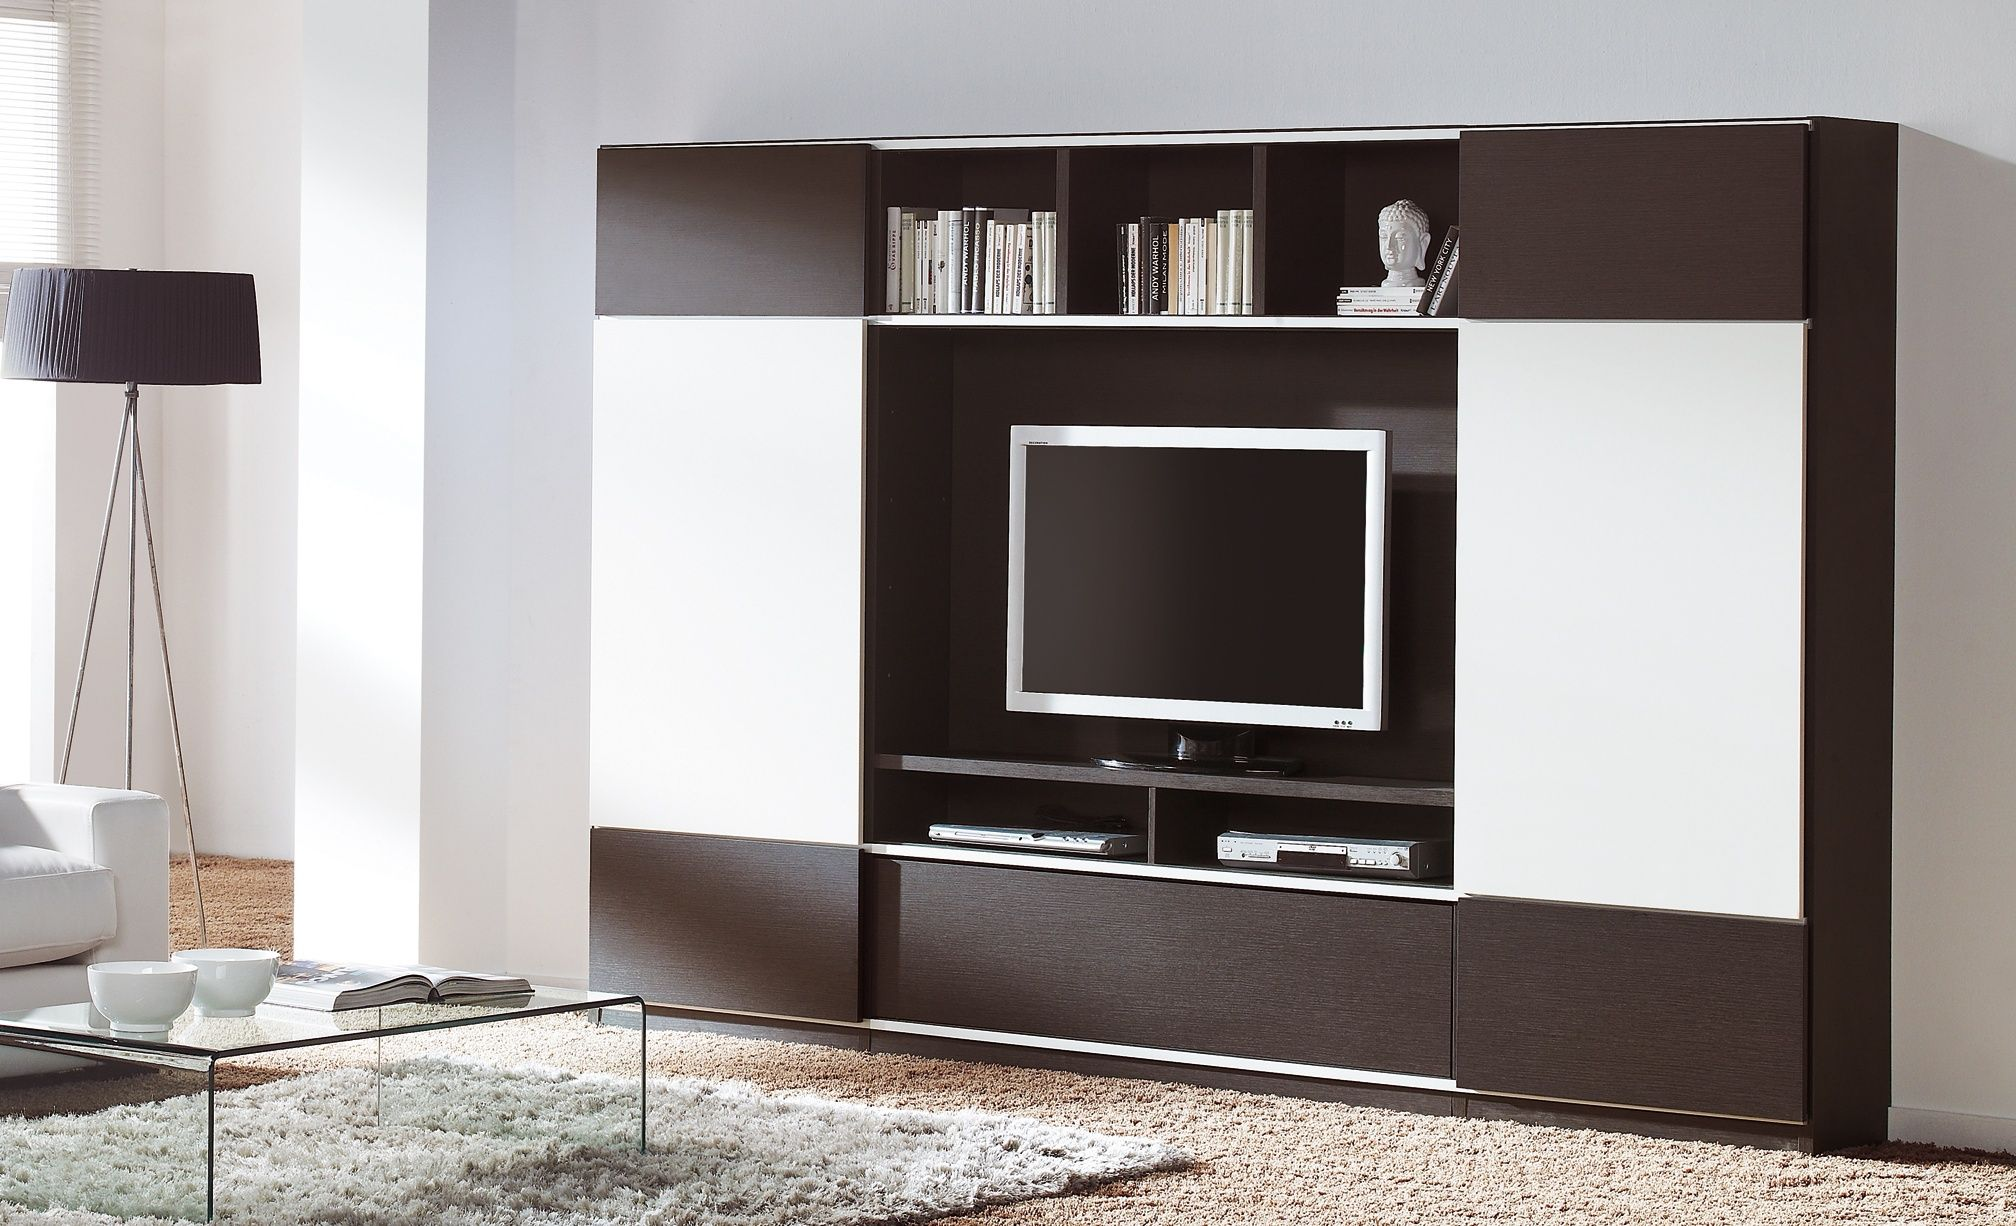 Modern Tv Storage Furniture Living Room Cabinets  חיפוש בGoogle  Furniture